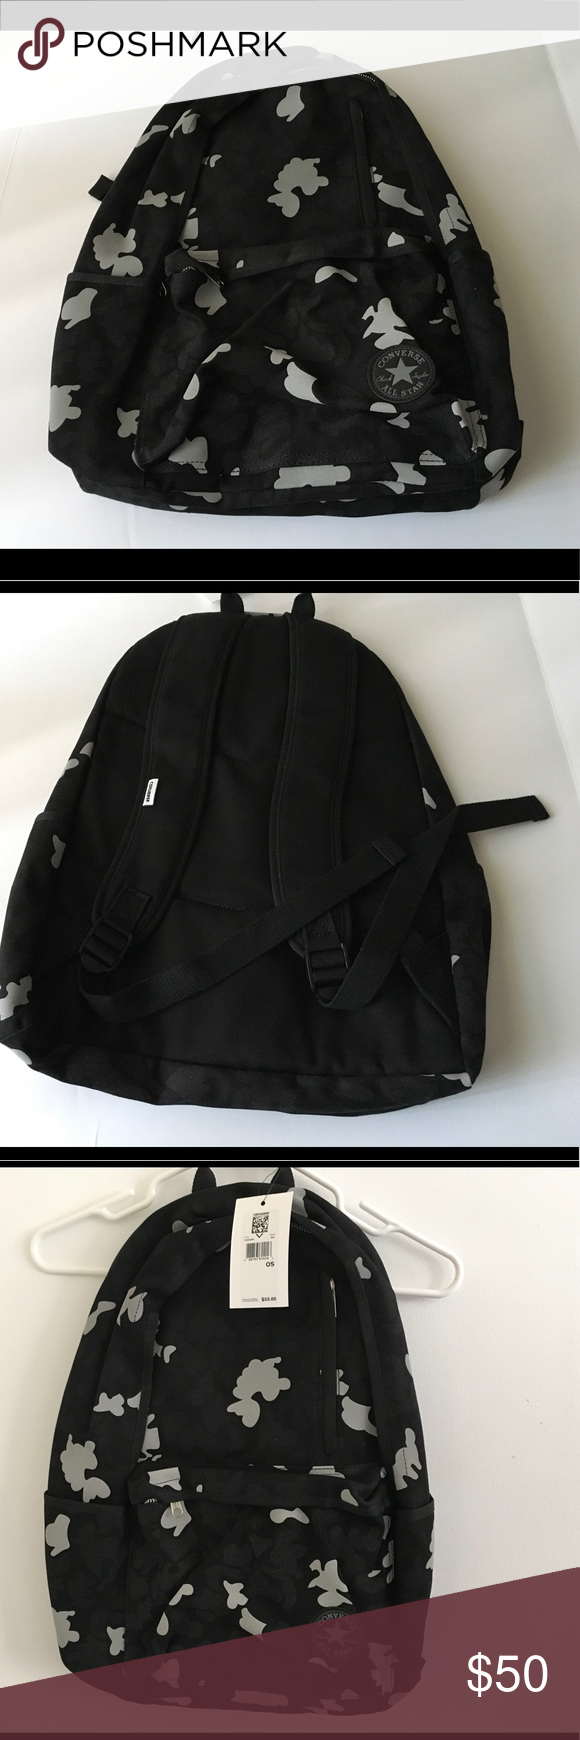 79aad21622 Converse - Original Core Plus camouflage Backpack Converse camouflage  backpack Black gray 5 pockets (2sides